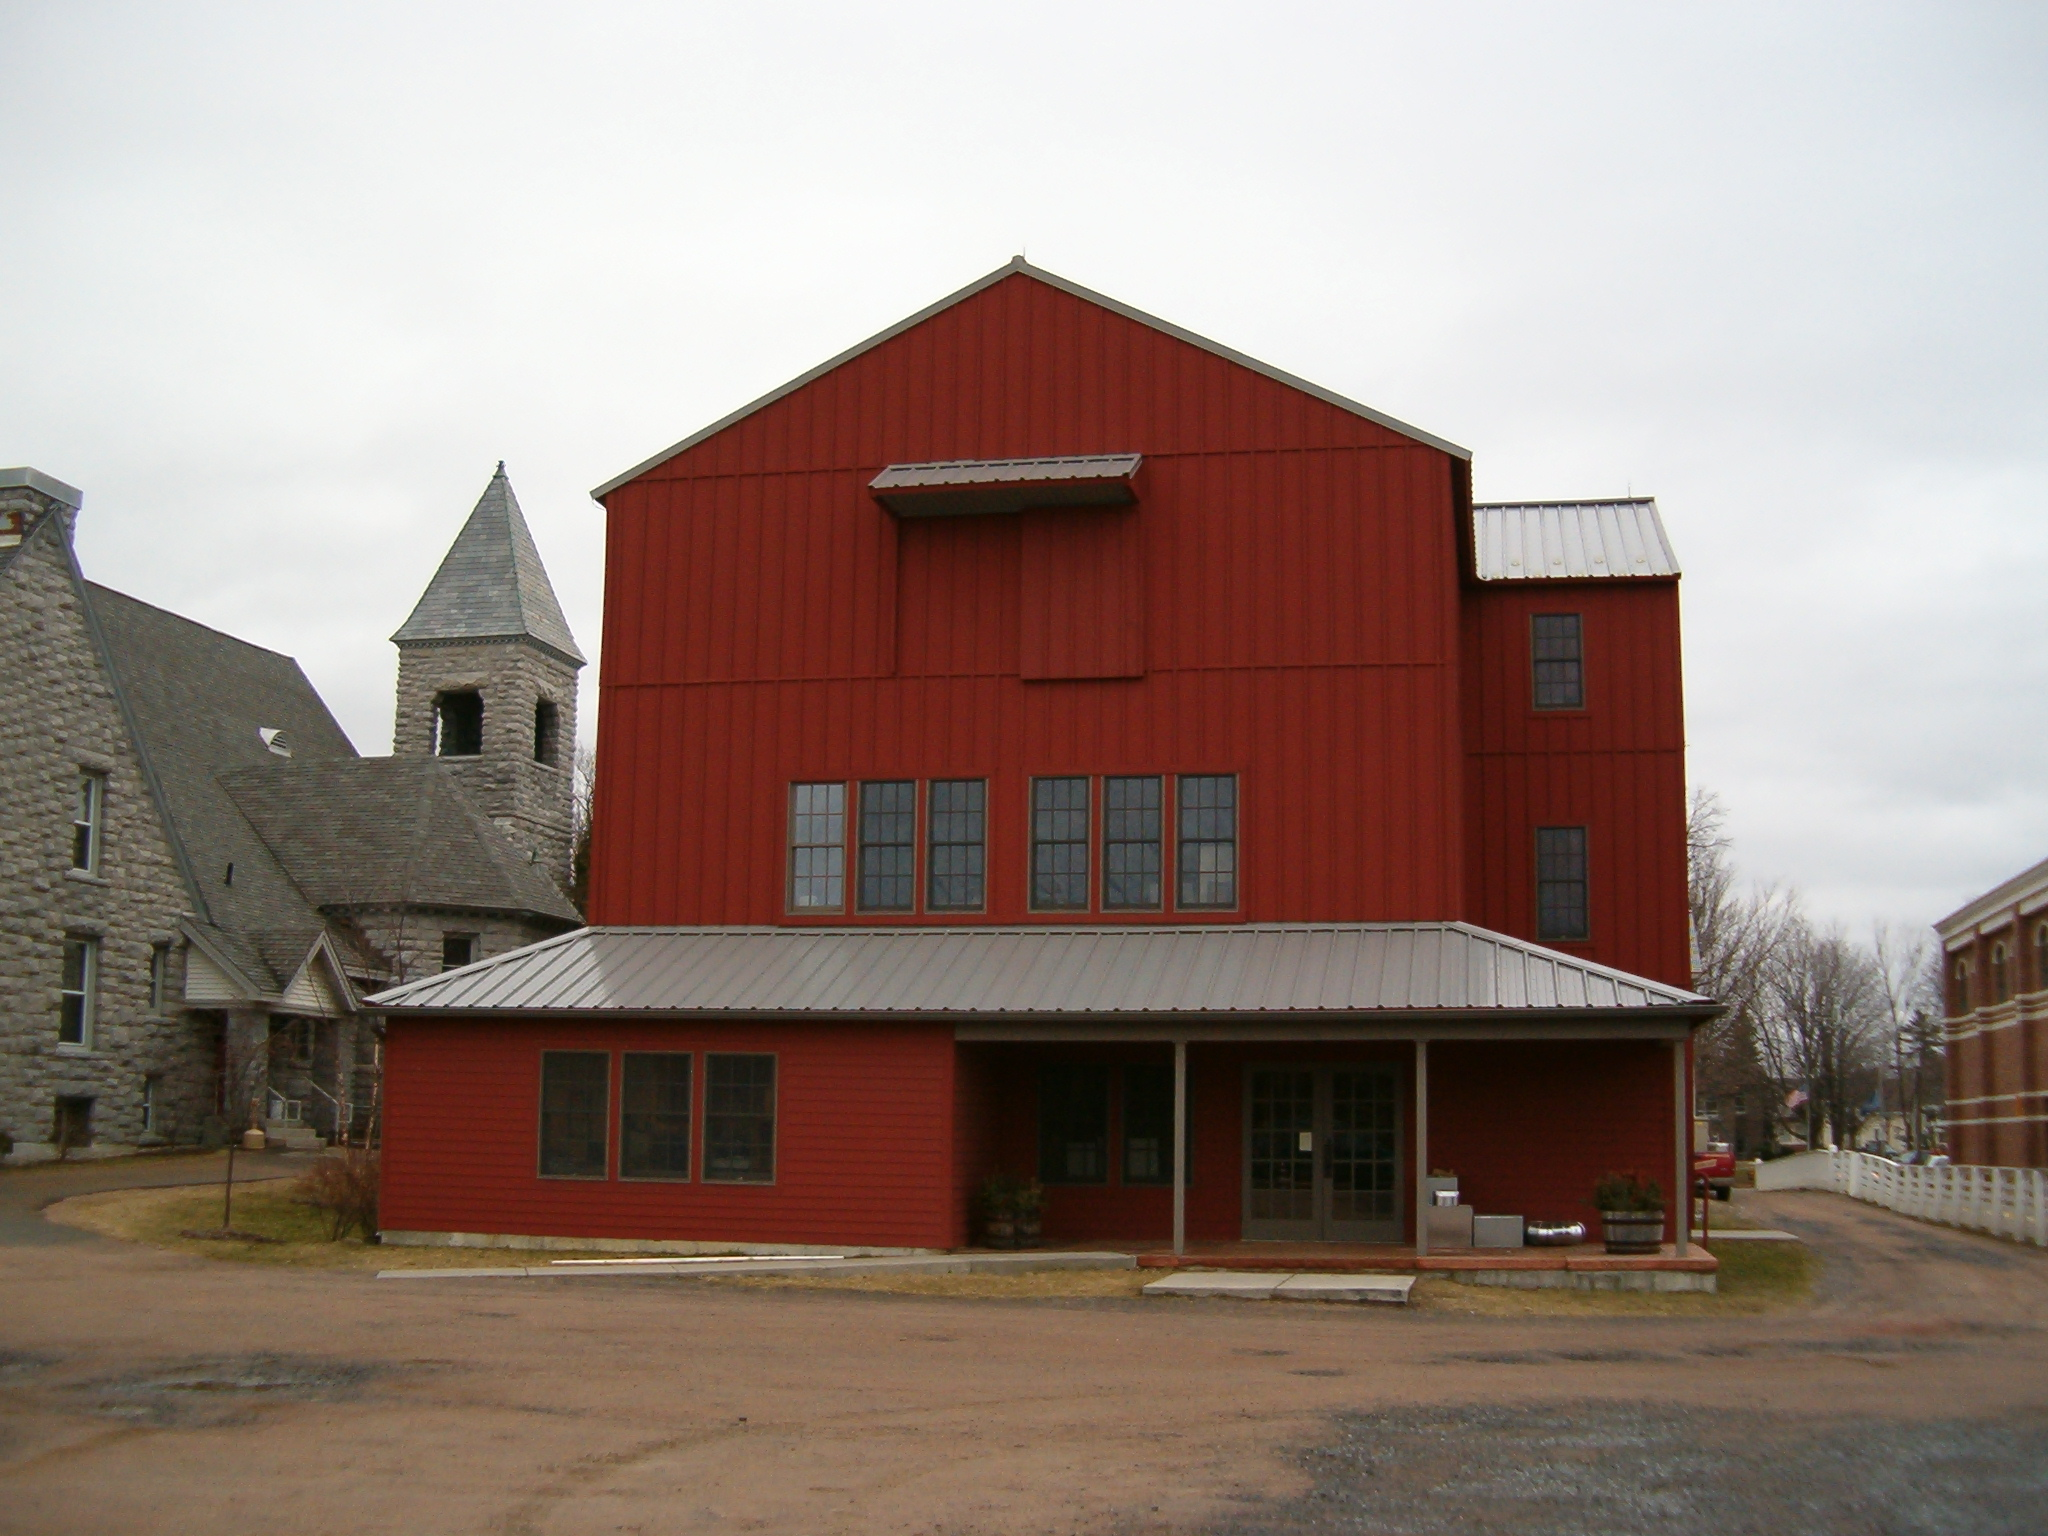 The Red Barn addition and main entrance behind the house.